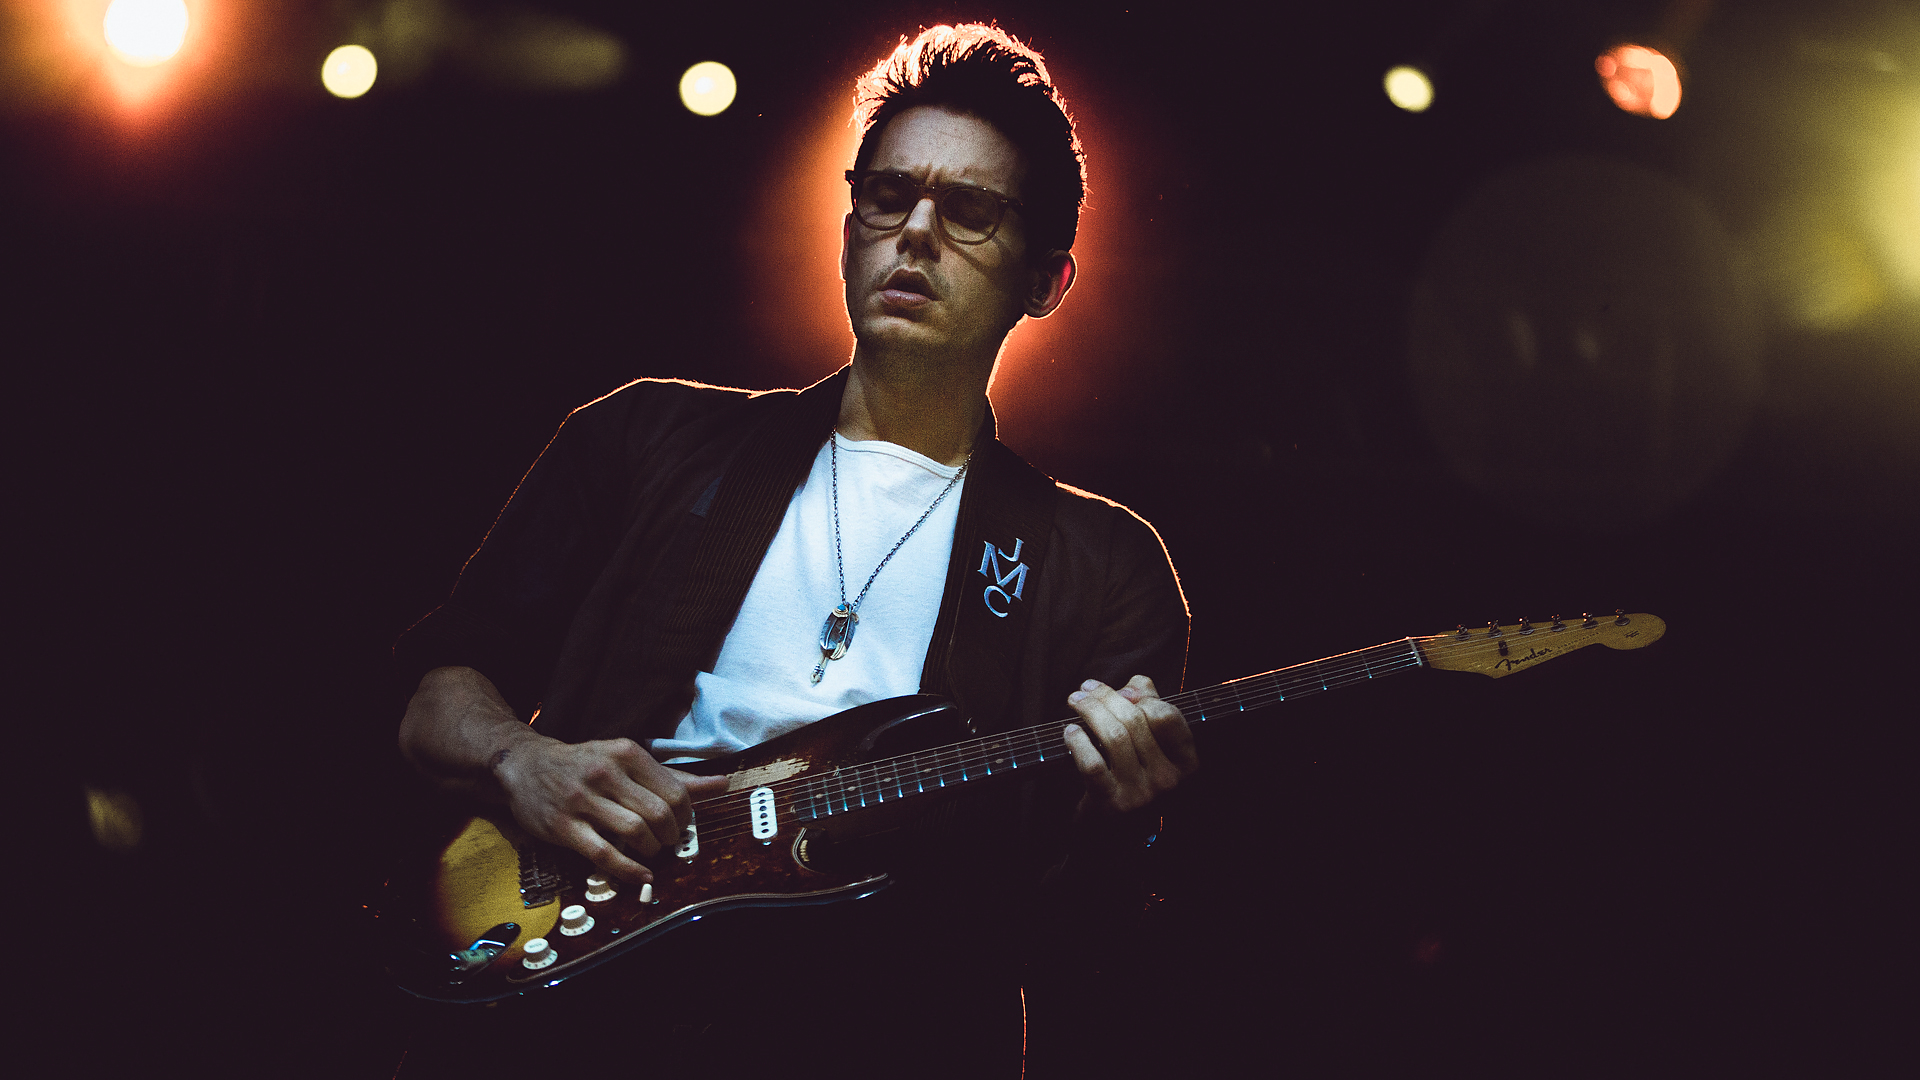 John Mayer Singer Hd Wallpaper 59570 1920x1080 Px HD Wallpapers Download Free Images Wallpaper [1000image.com]